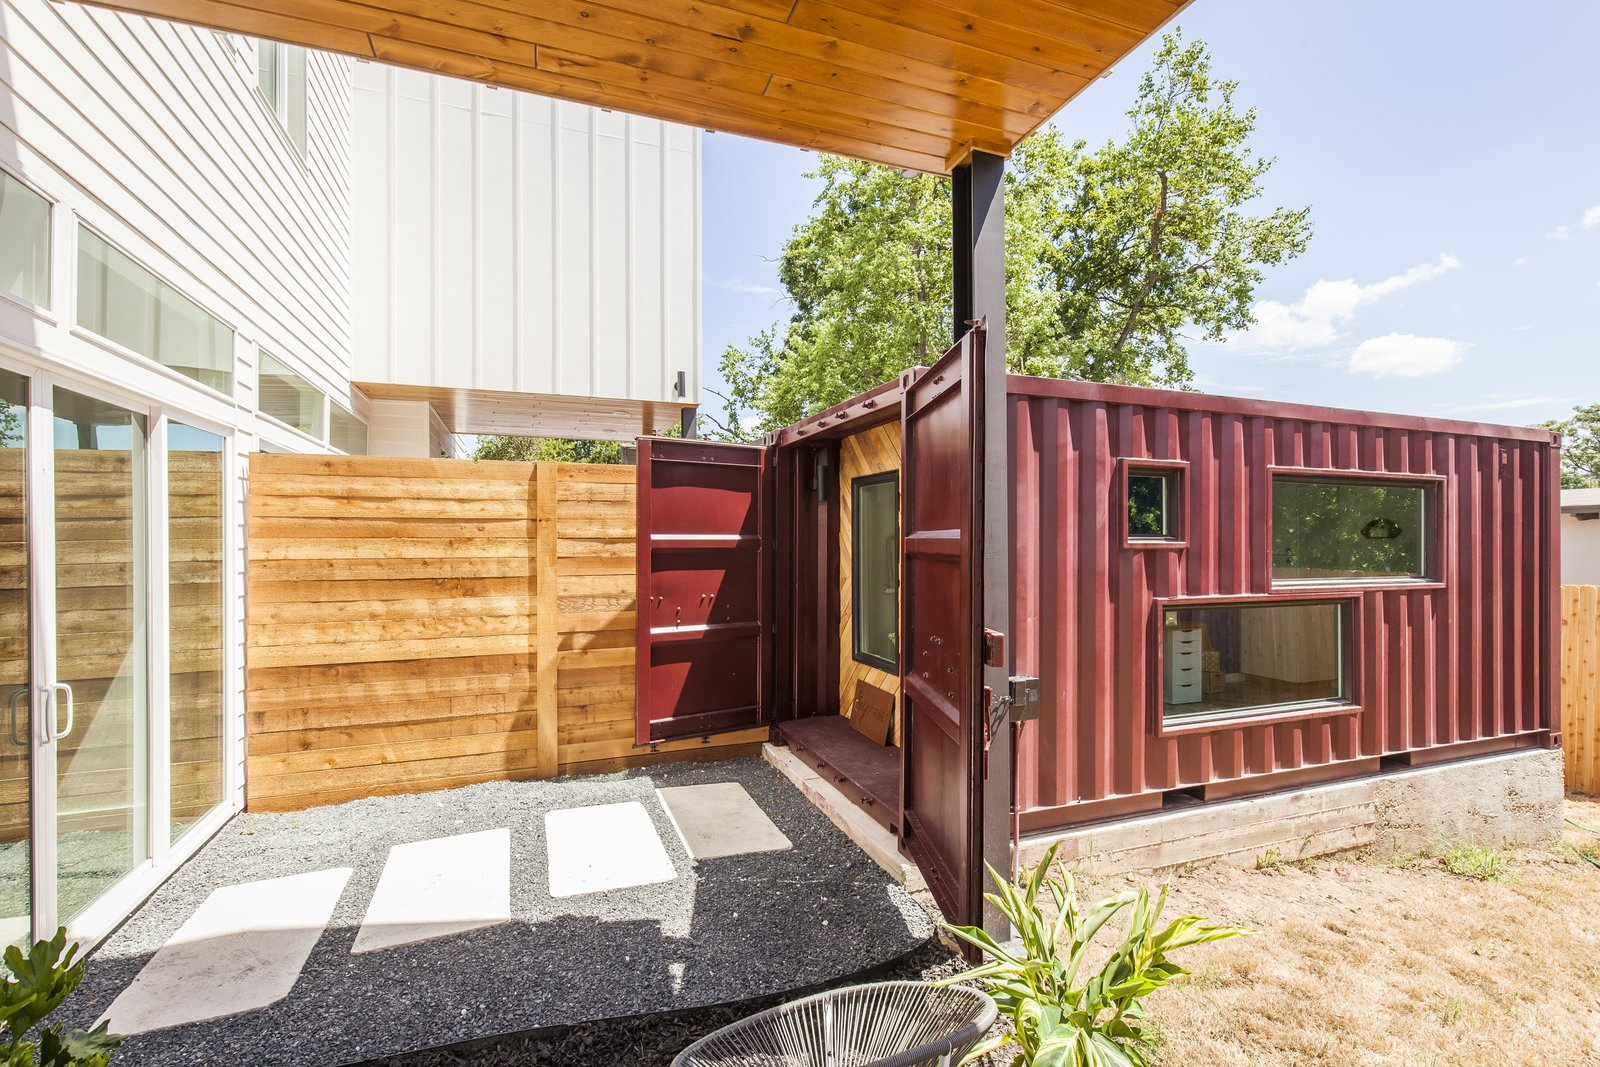 Unit B exterior of removed shipping container addition to home in backyard.